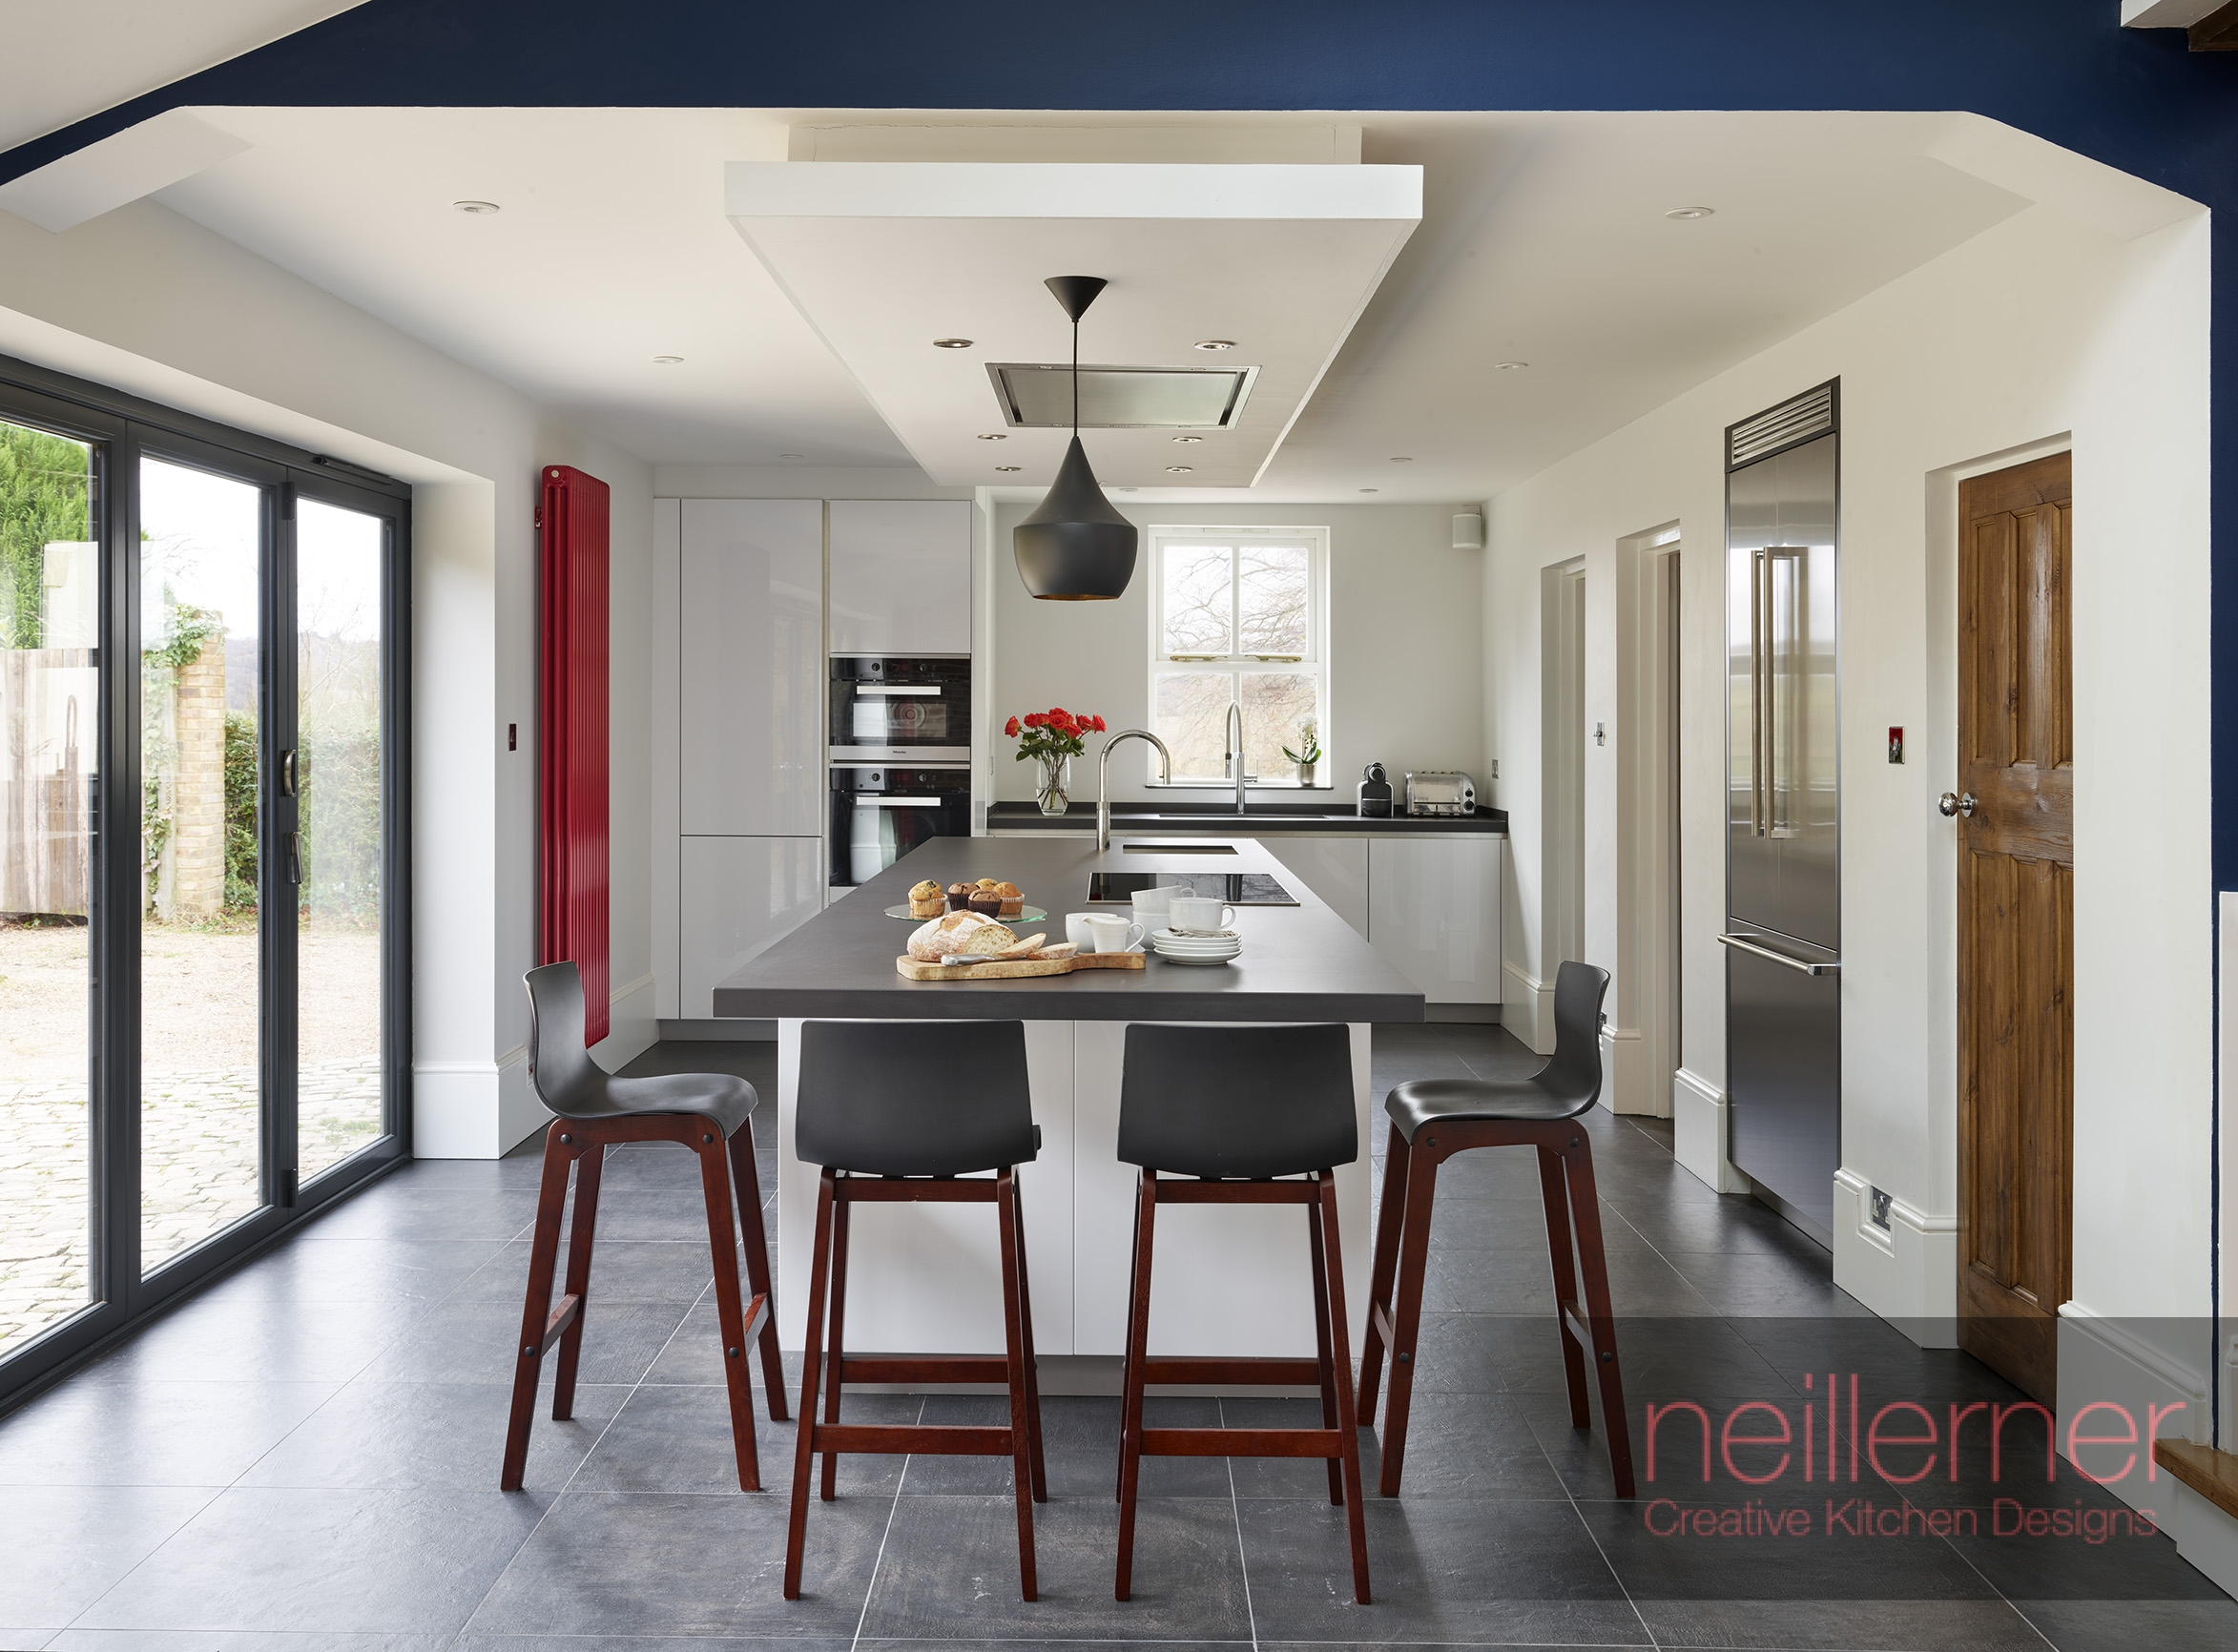 How do you replan your kitchen?